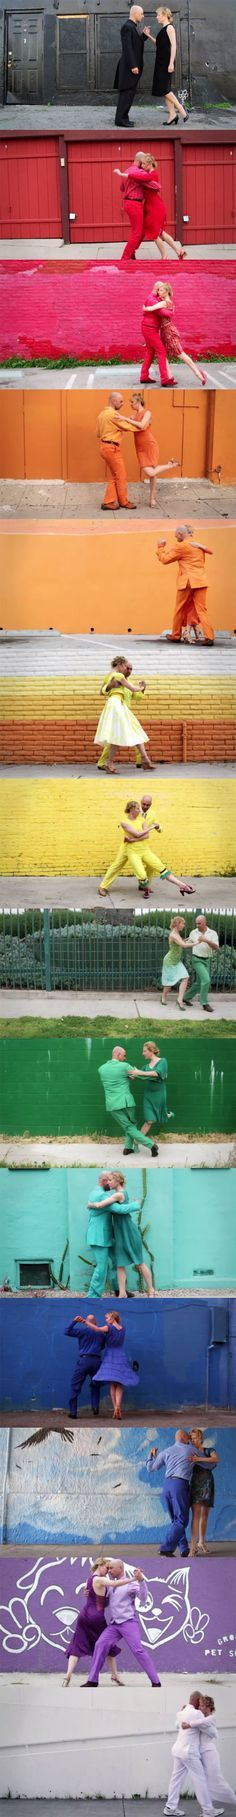 The dance, the shoes, the clothes, the colors. #loveit OK Go - Skyscrapers